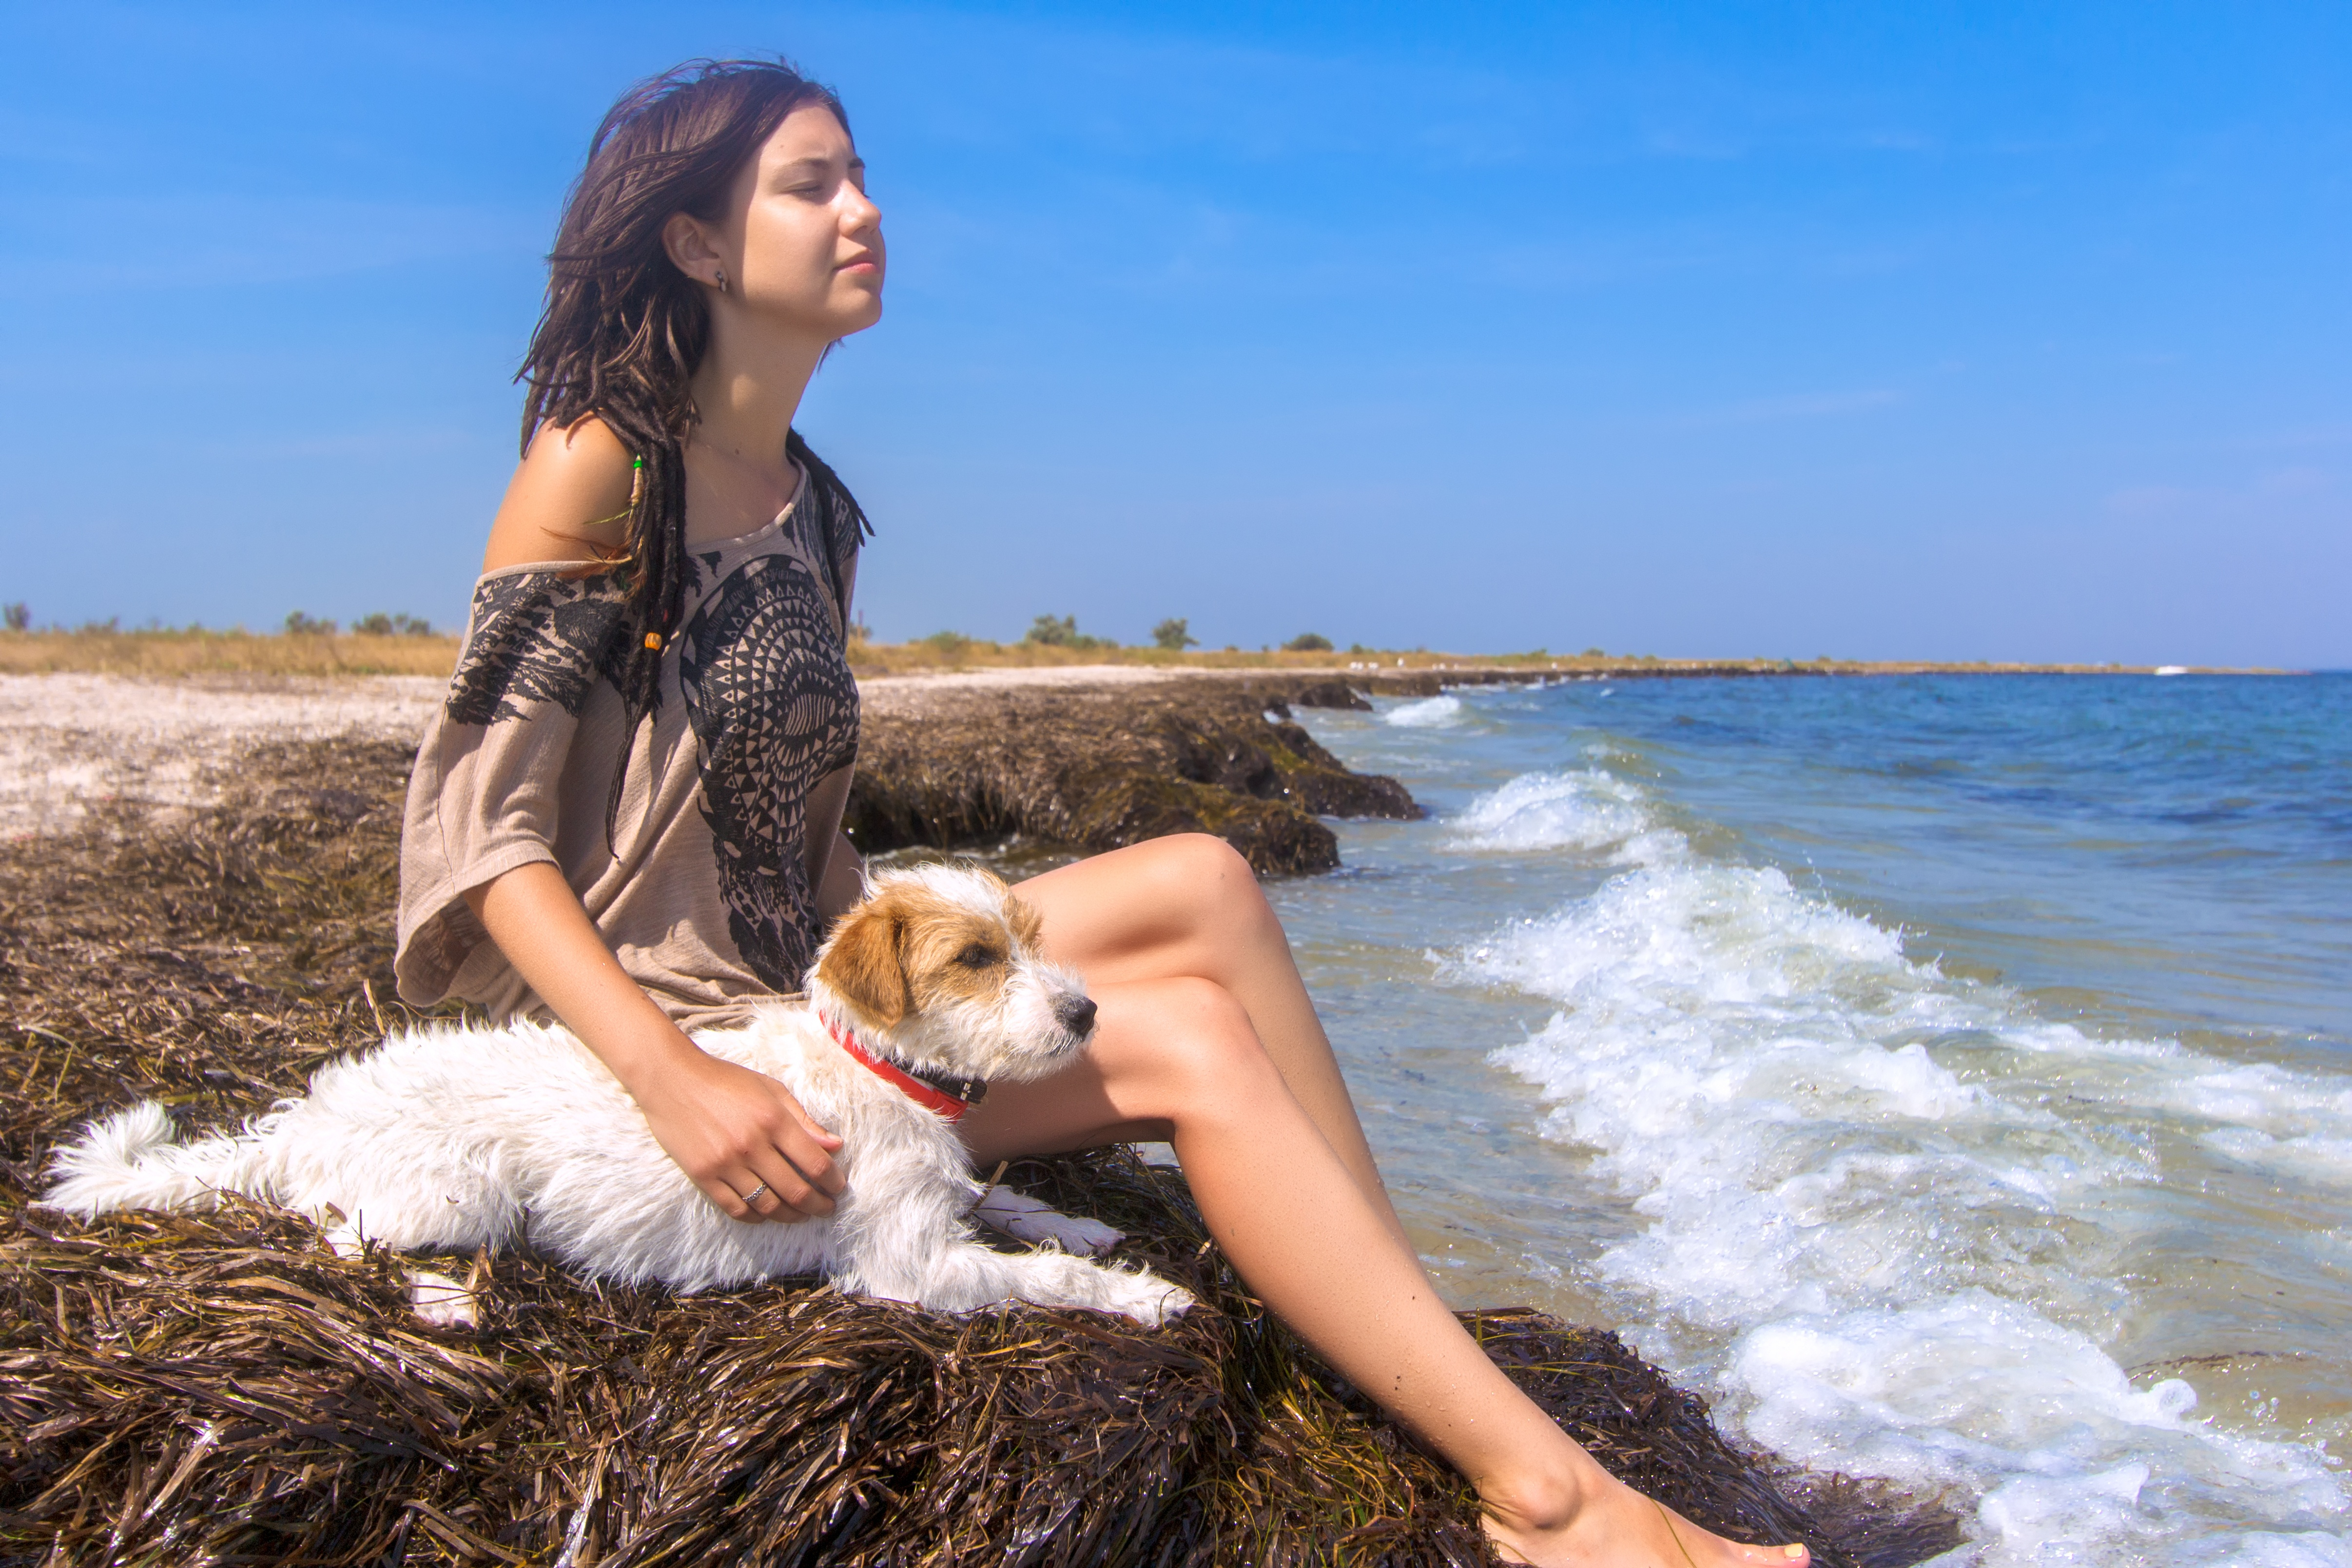 Young gal with her dog by the beach.